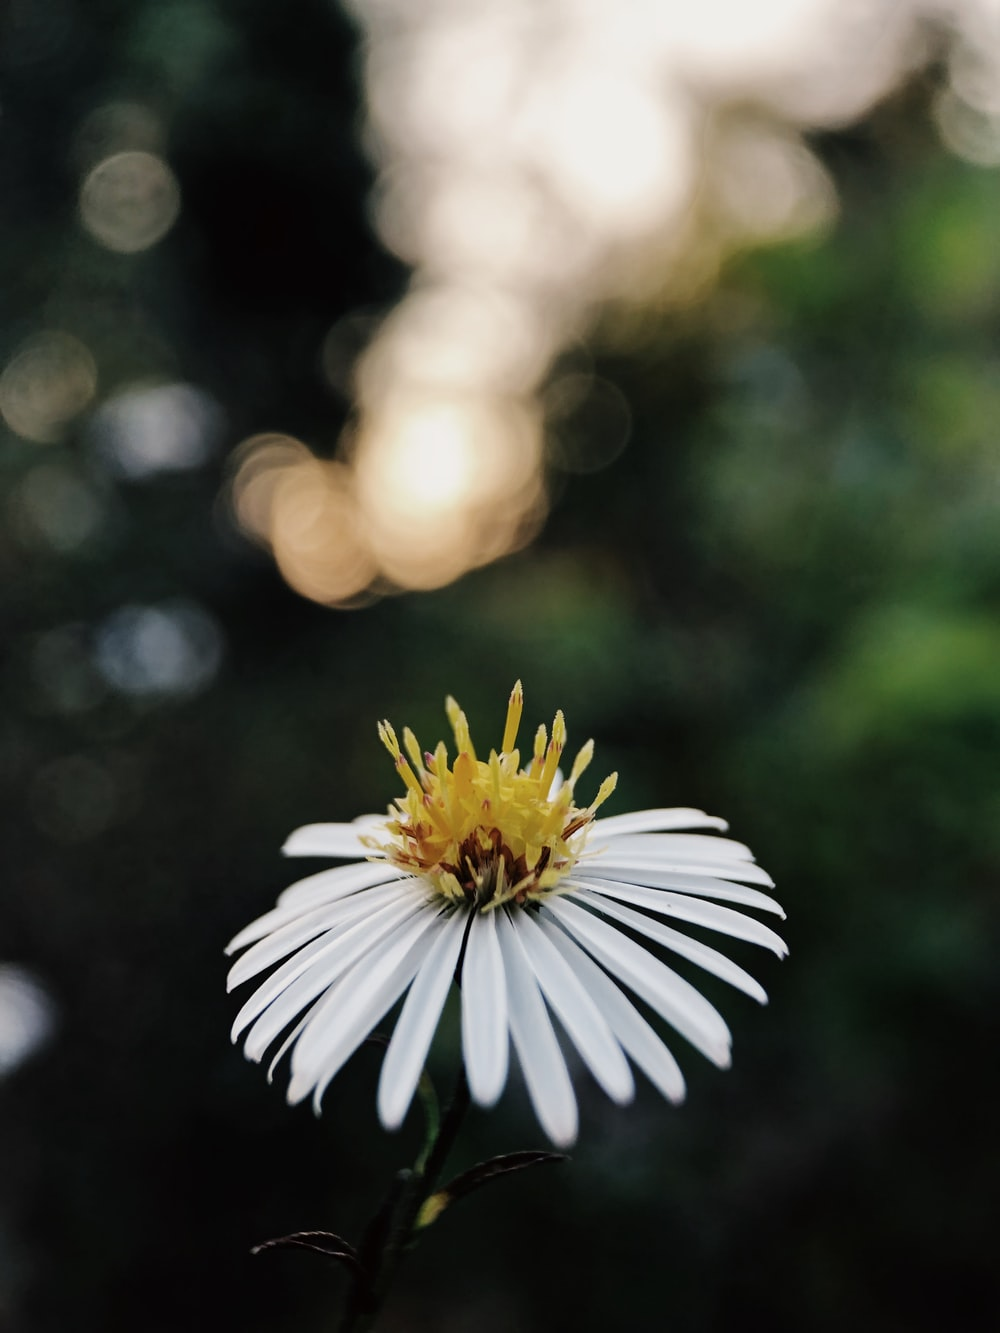 White Petals Pictures Download Free Images On Unsplash